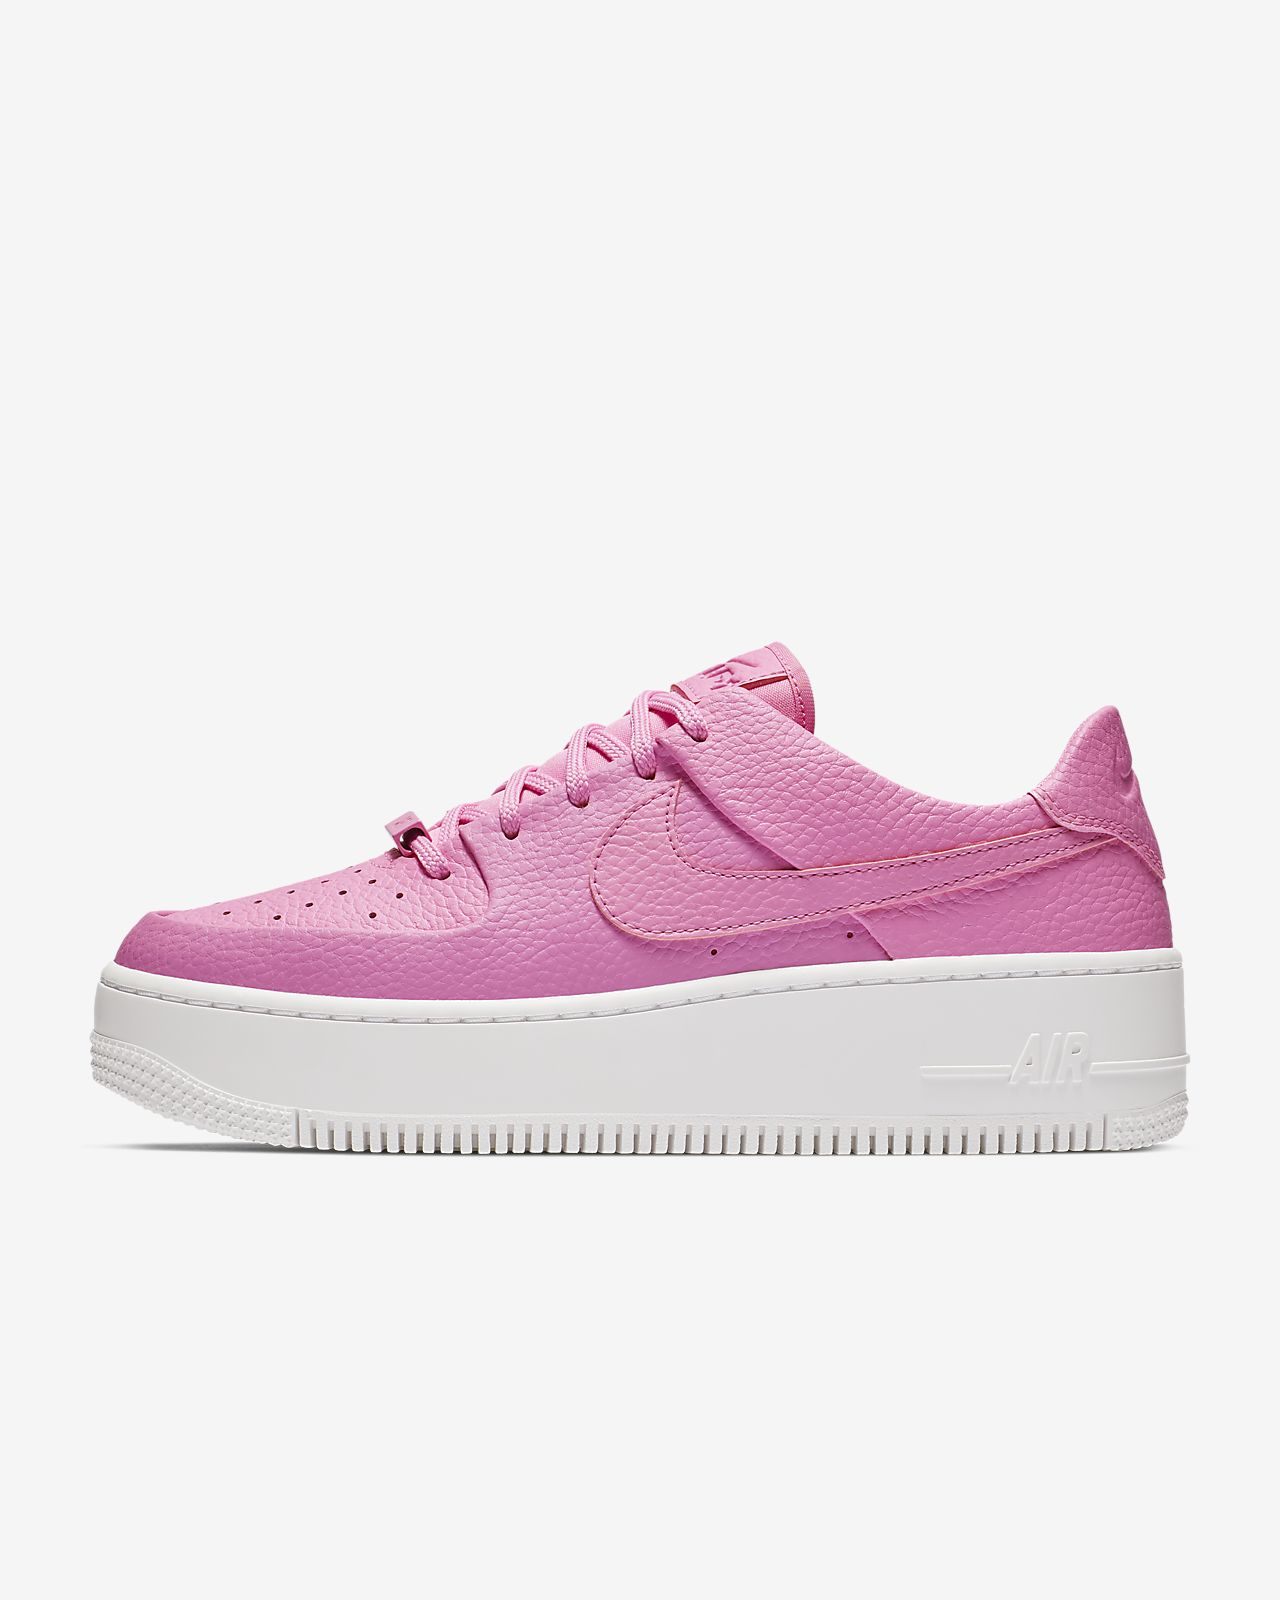 official photos 9a727 568b4 ... Chaussure Nike Air Force 1 Sage Low pour Femme